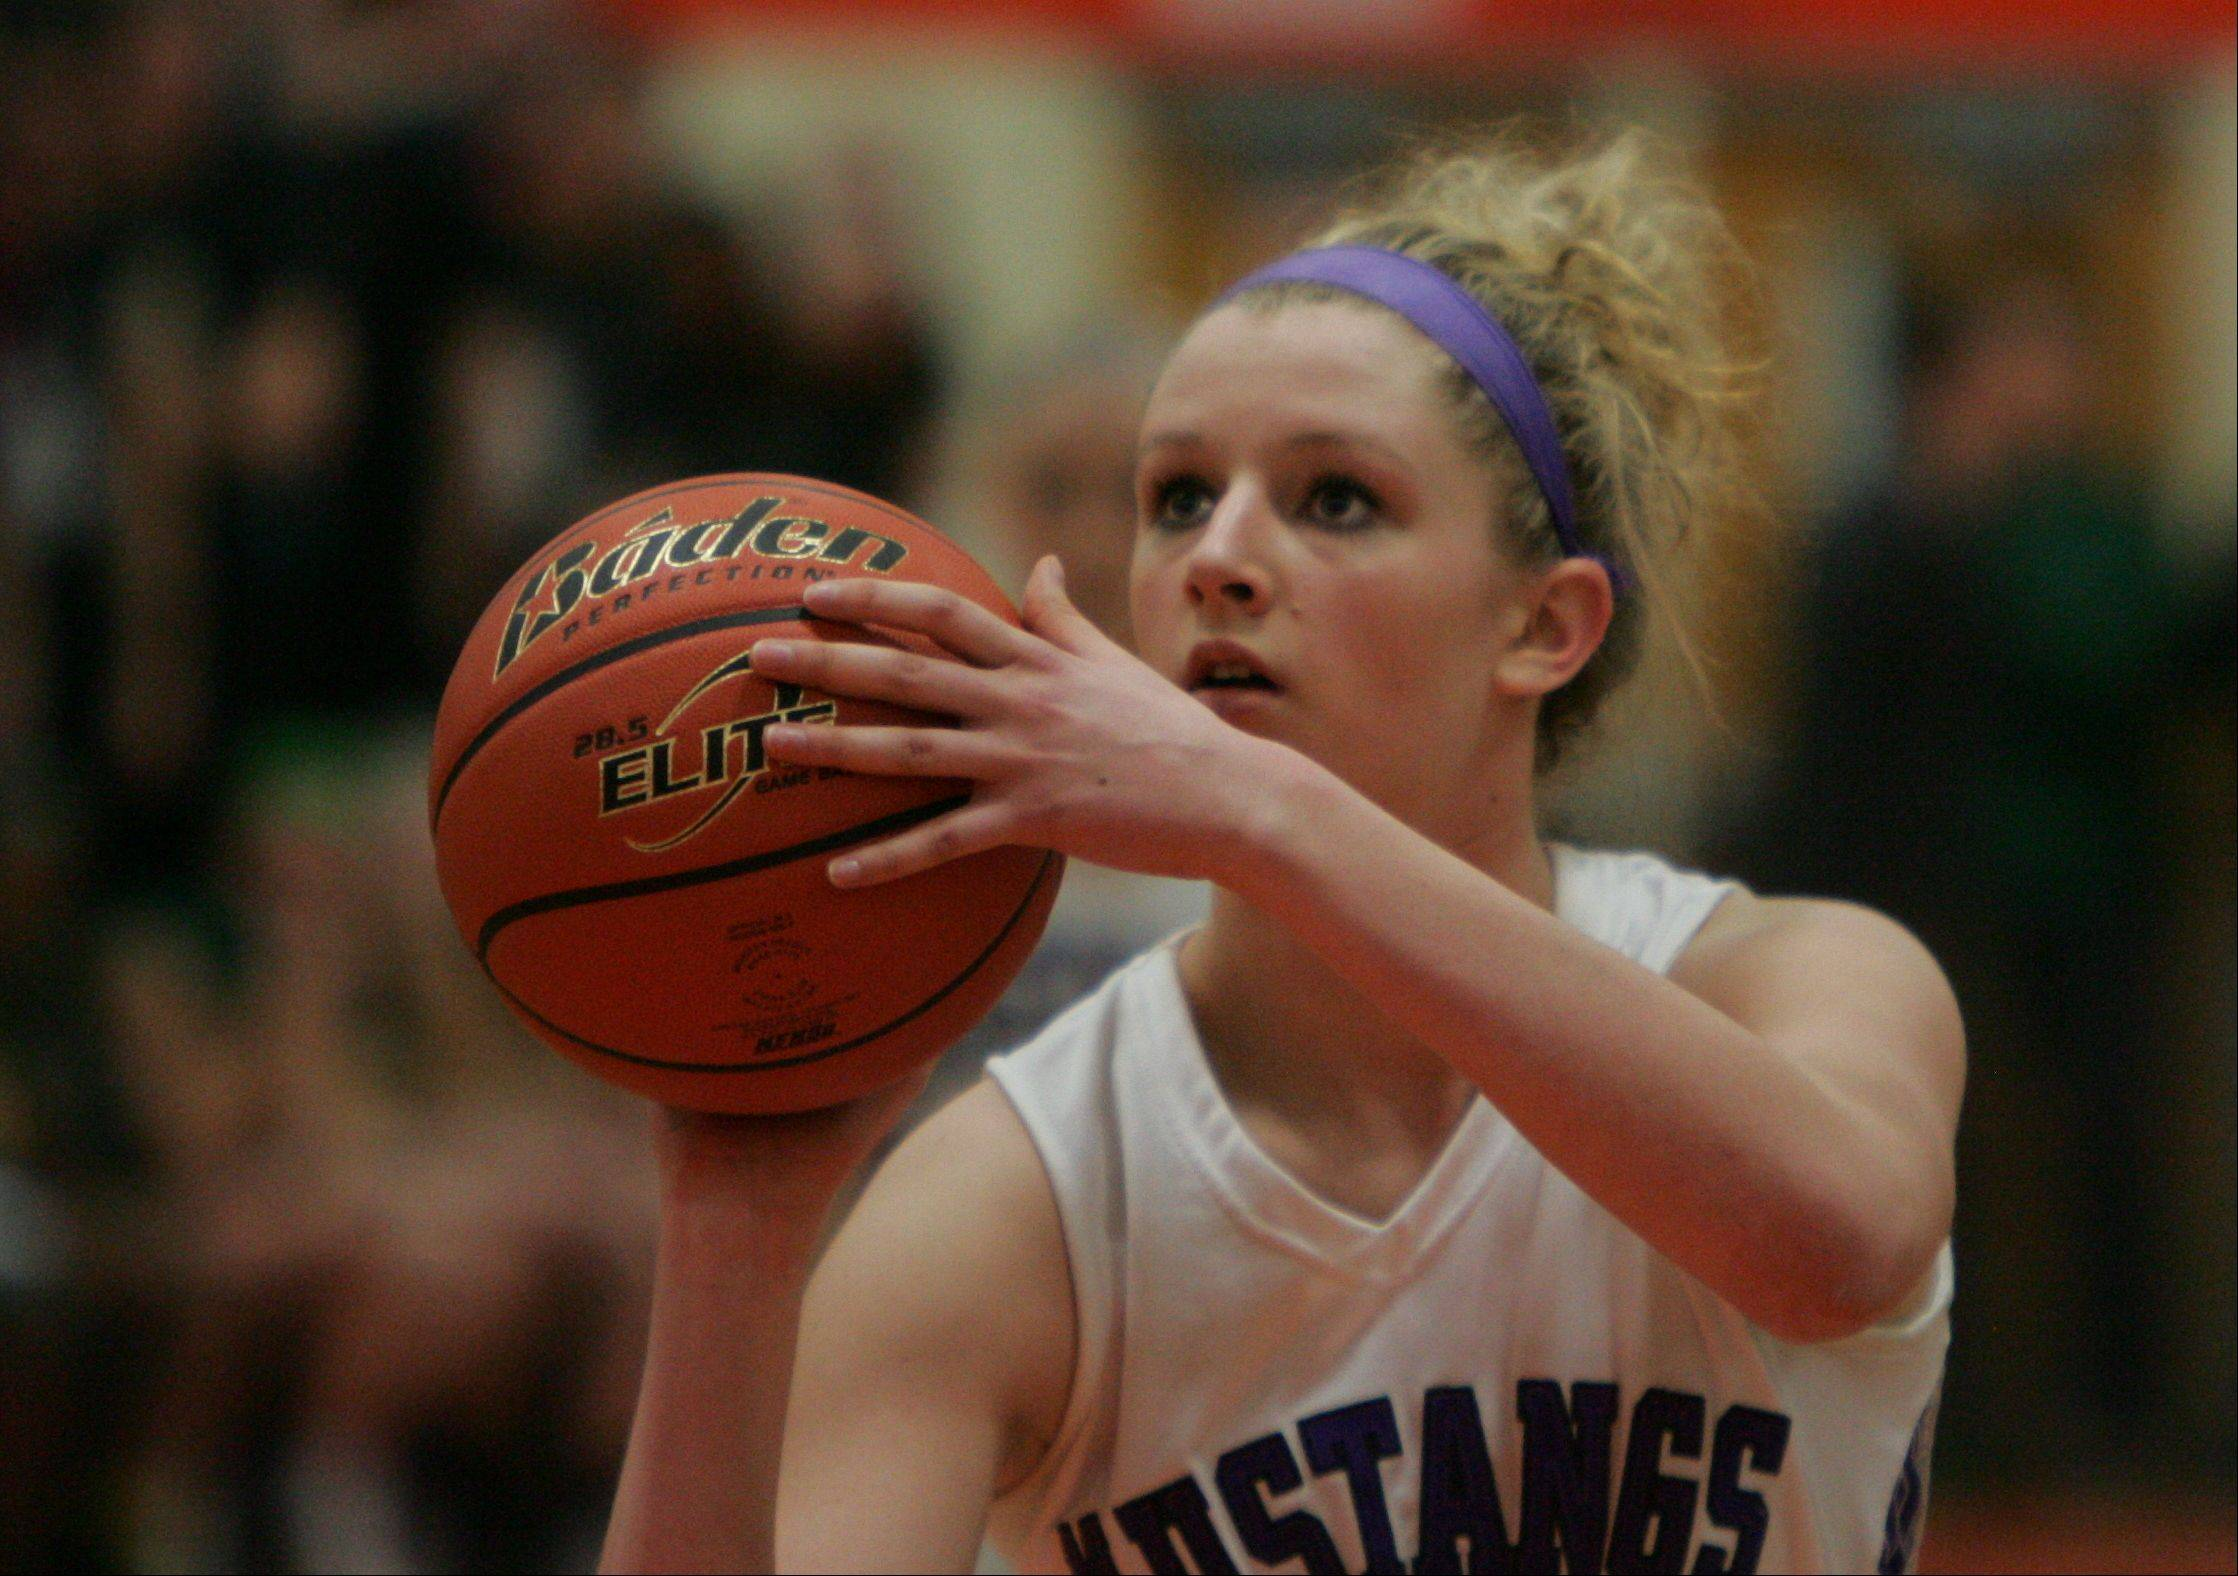 Images from the Rolling Meadows vs. Fremd Class 4A girls basketball sectional final on Thursday, Feb. 21 in Libertyville. Rolling Meadows won the game 59 - 50.